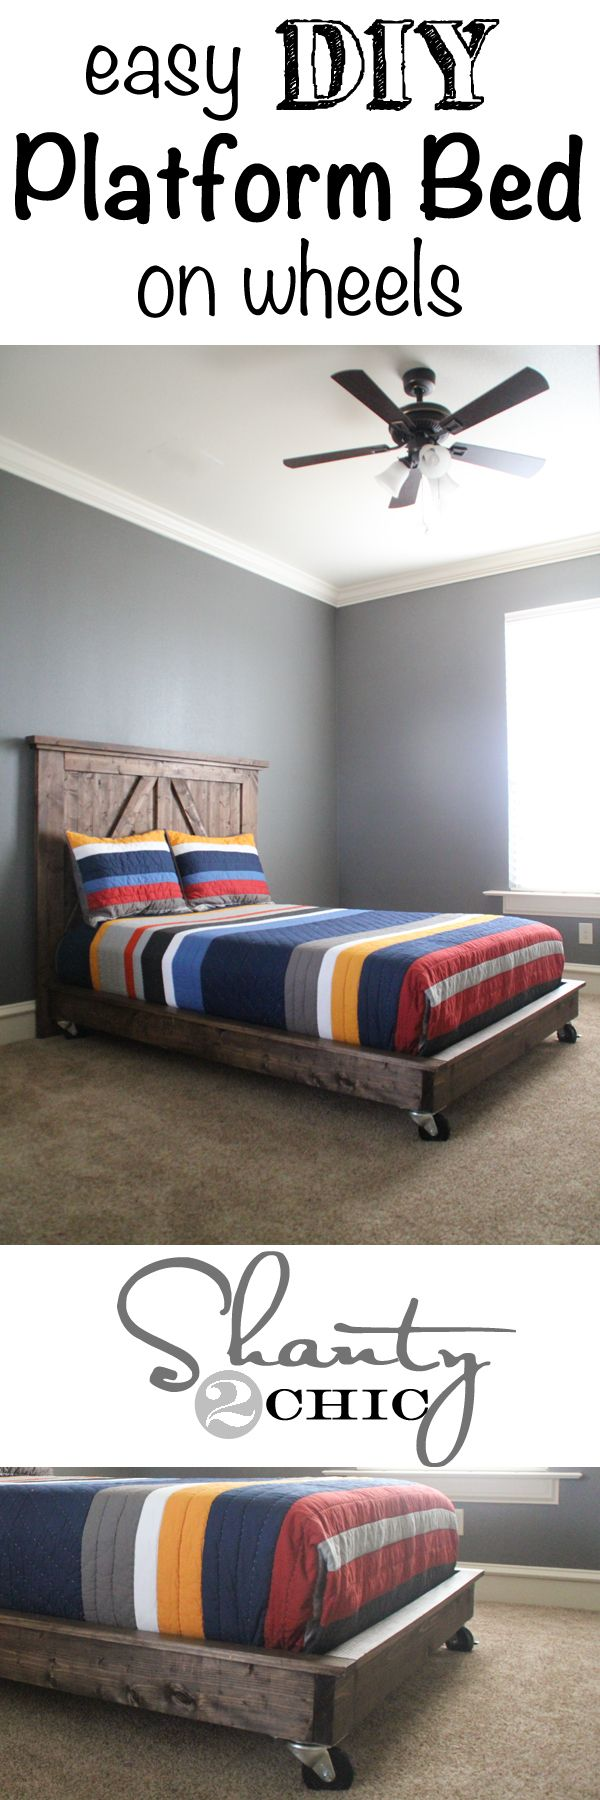 diy platform bed on wheels wood projects pinterest chambres lits et base de lit. Black Bedroom Furniture Sets. Home Design Ideas